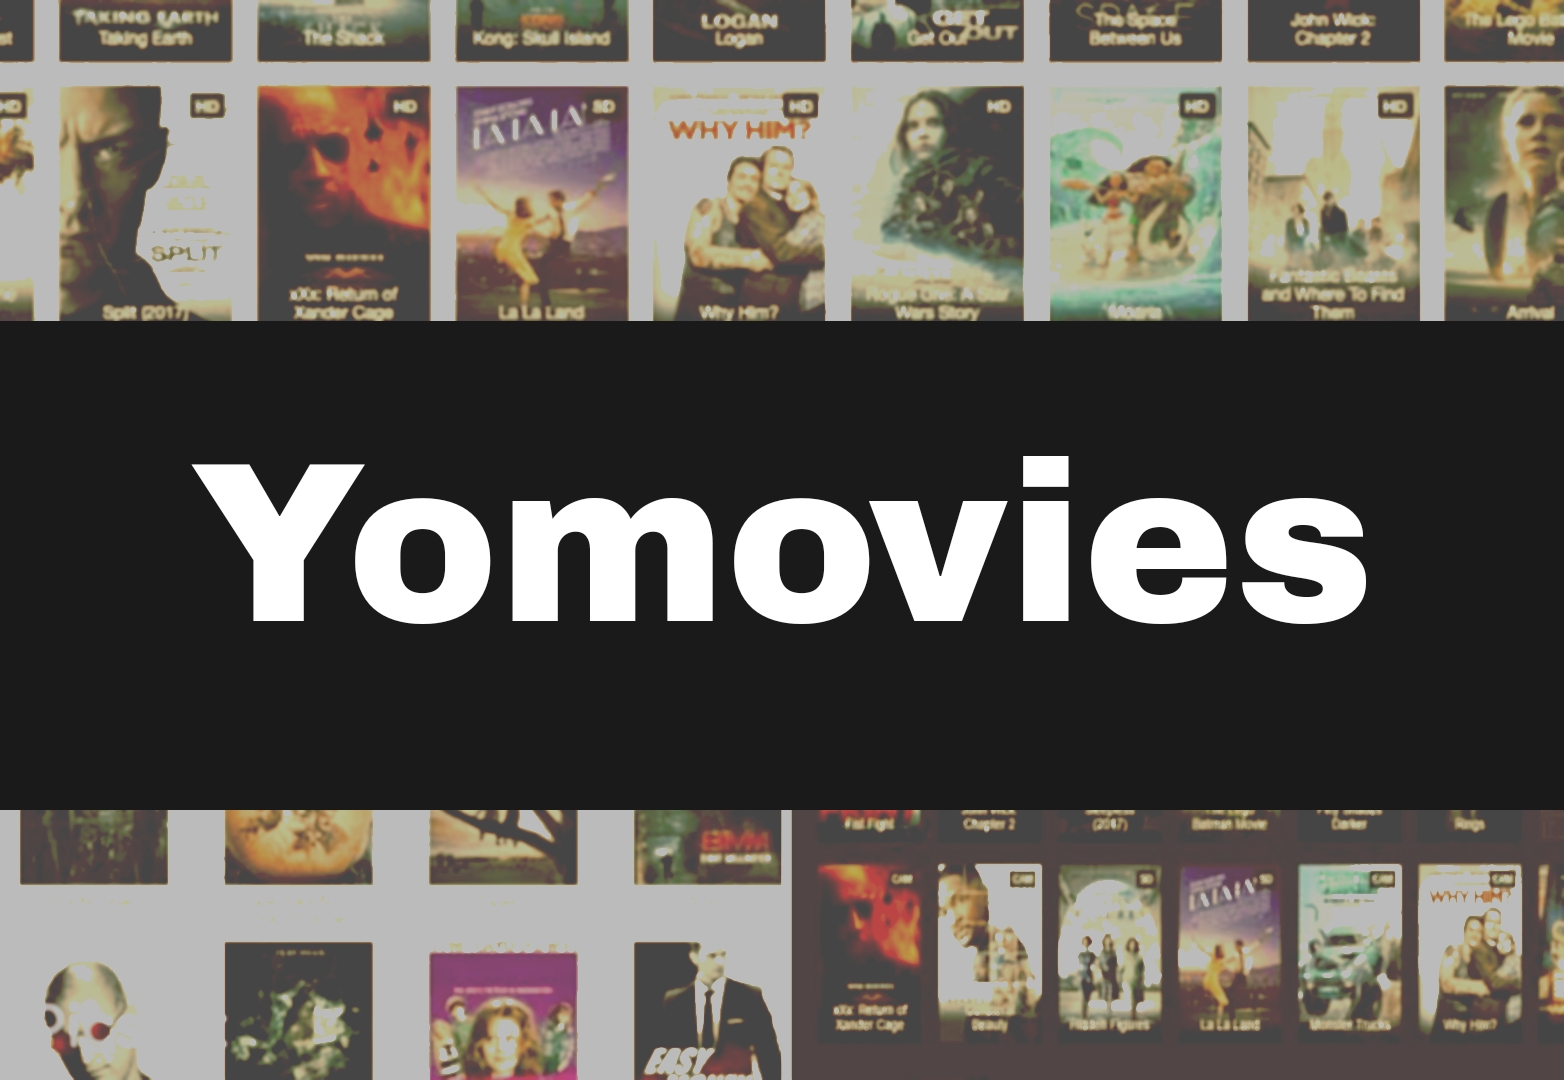 Yomovies 2021 – Piracy Latest Dubbed Movies available here